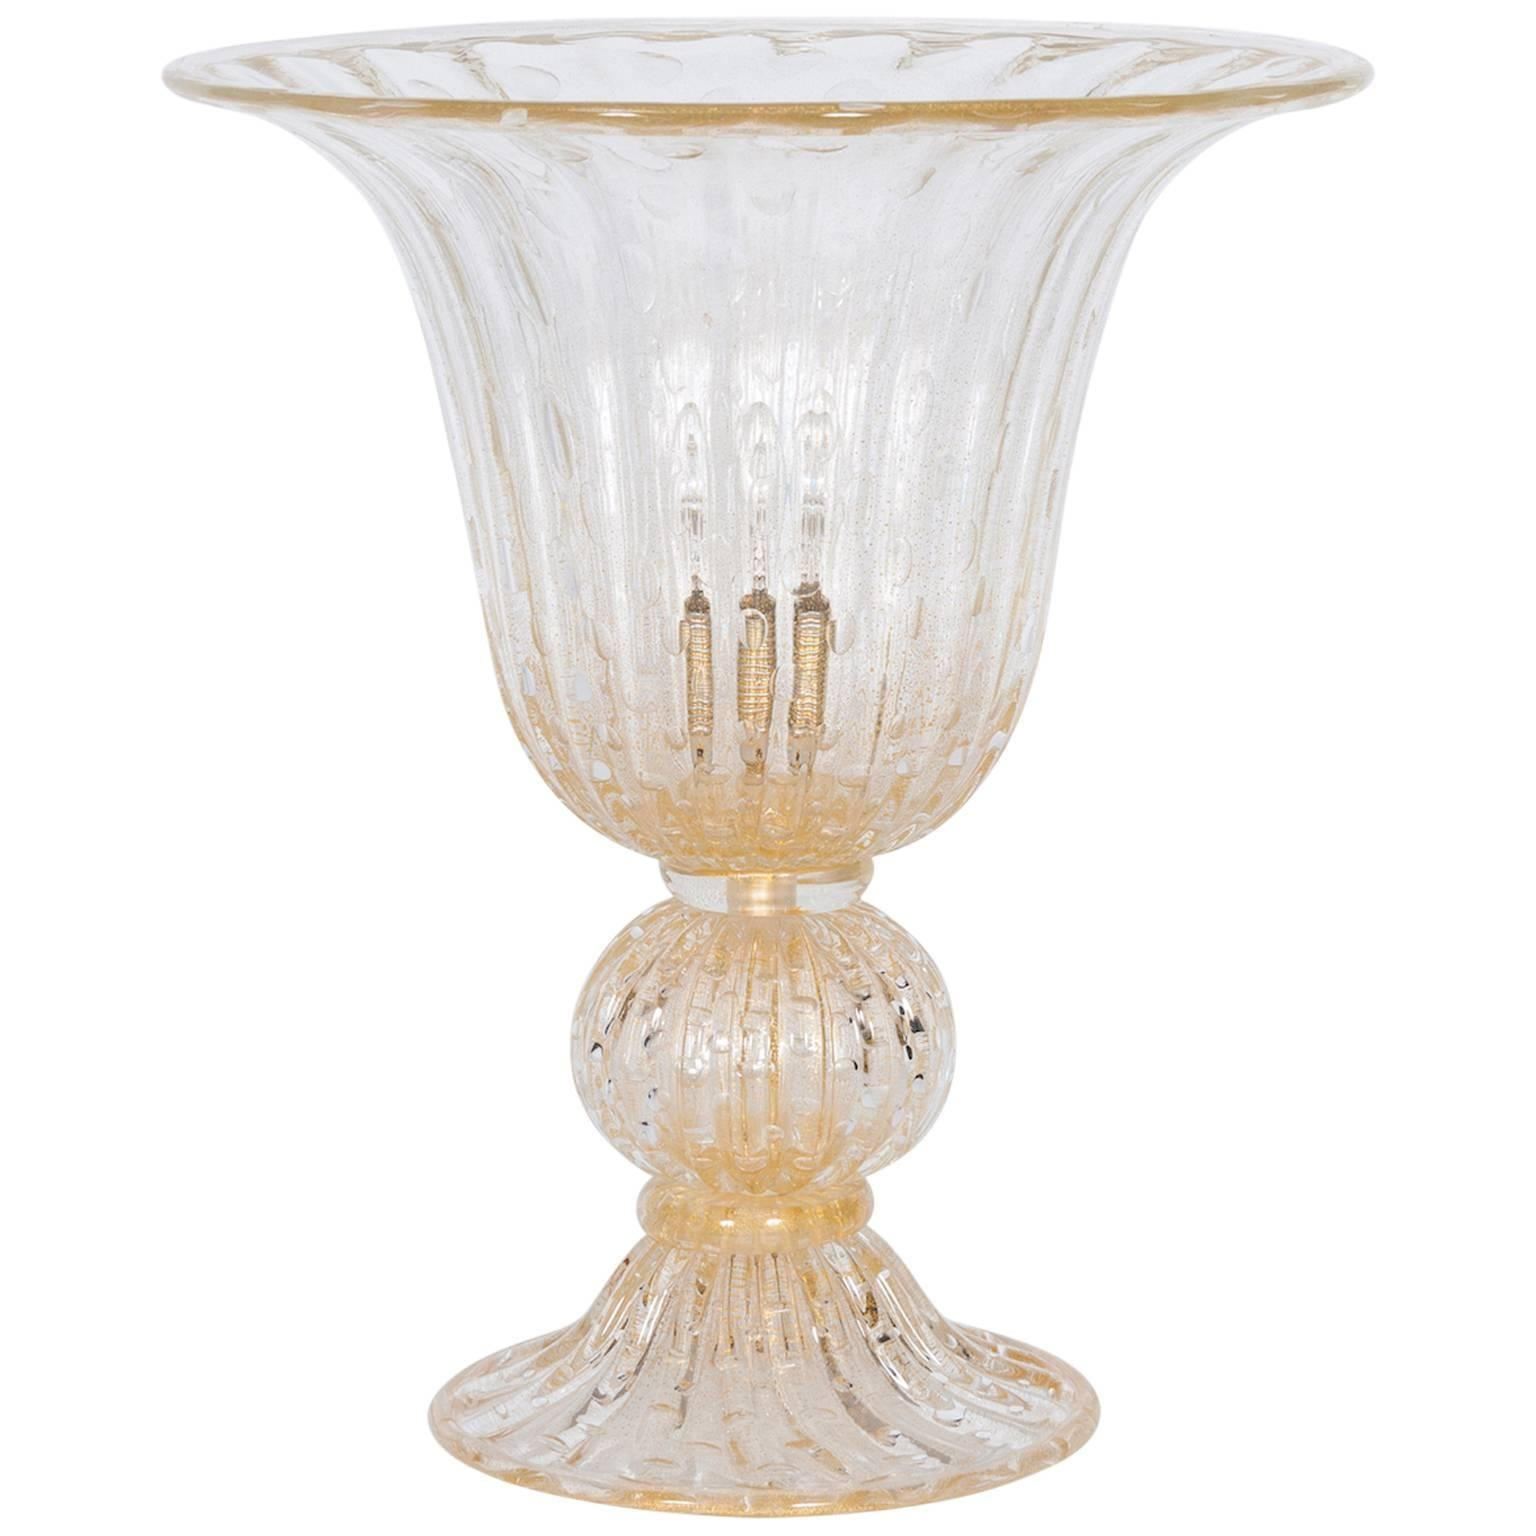 Italian Murano Glass Table Lamp in Style of Barovier & Toso Contemporary